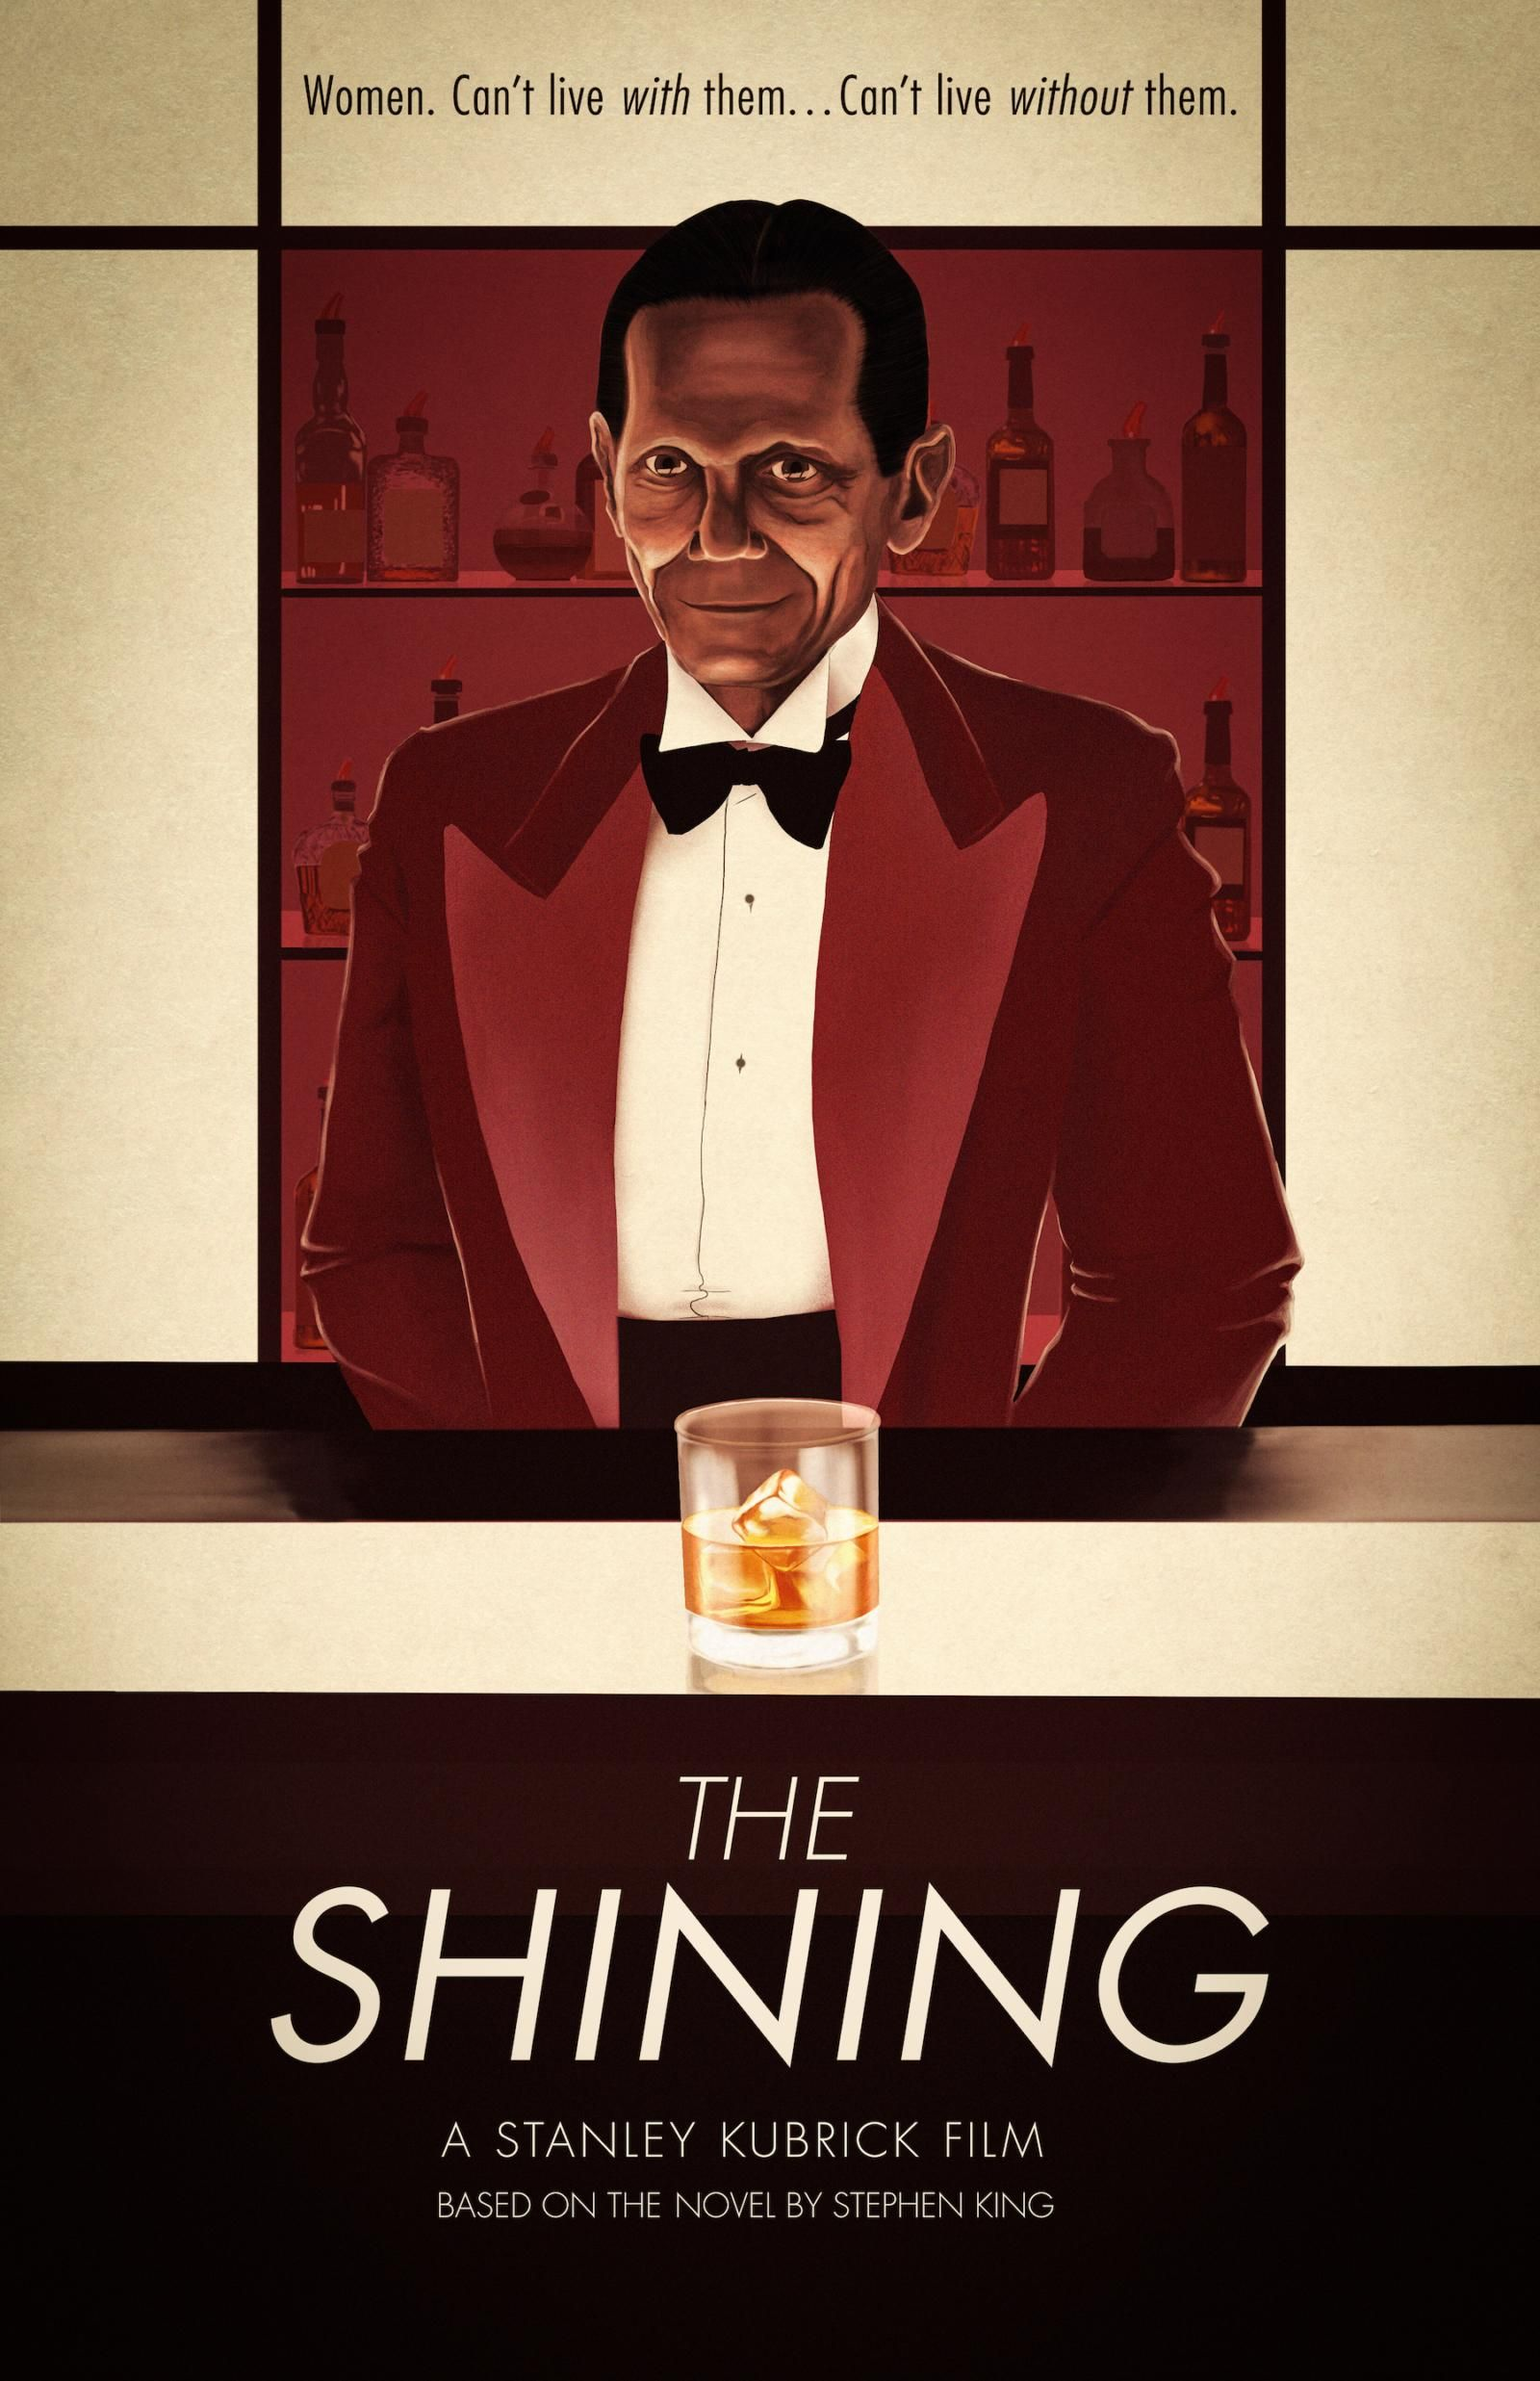 The Shining 1980 Hd Wallpaper From Gallsourcecom The